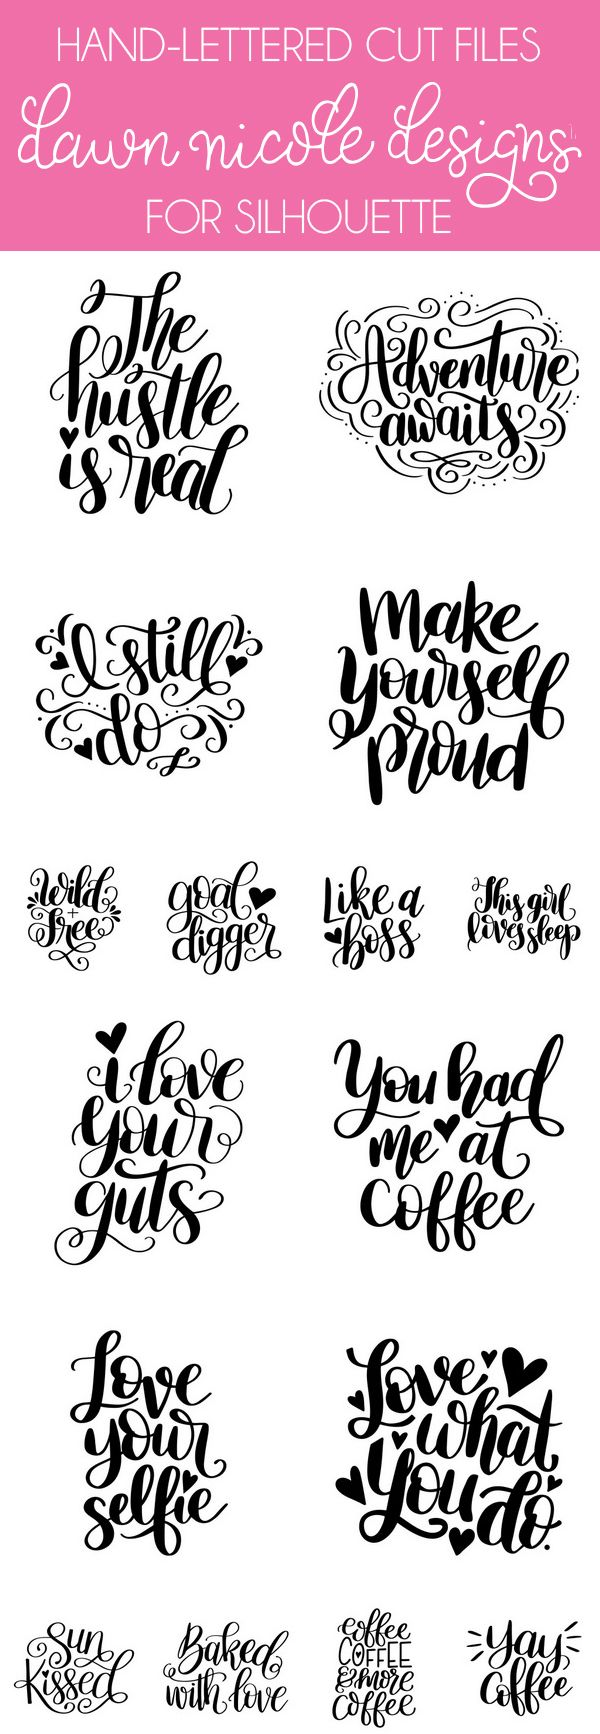 50+ Hand-Lettered Silhouette Cut Files by Dawn Nicole Designs